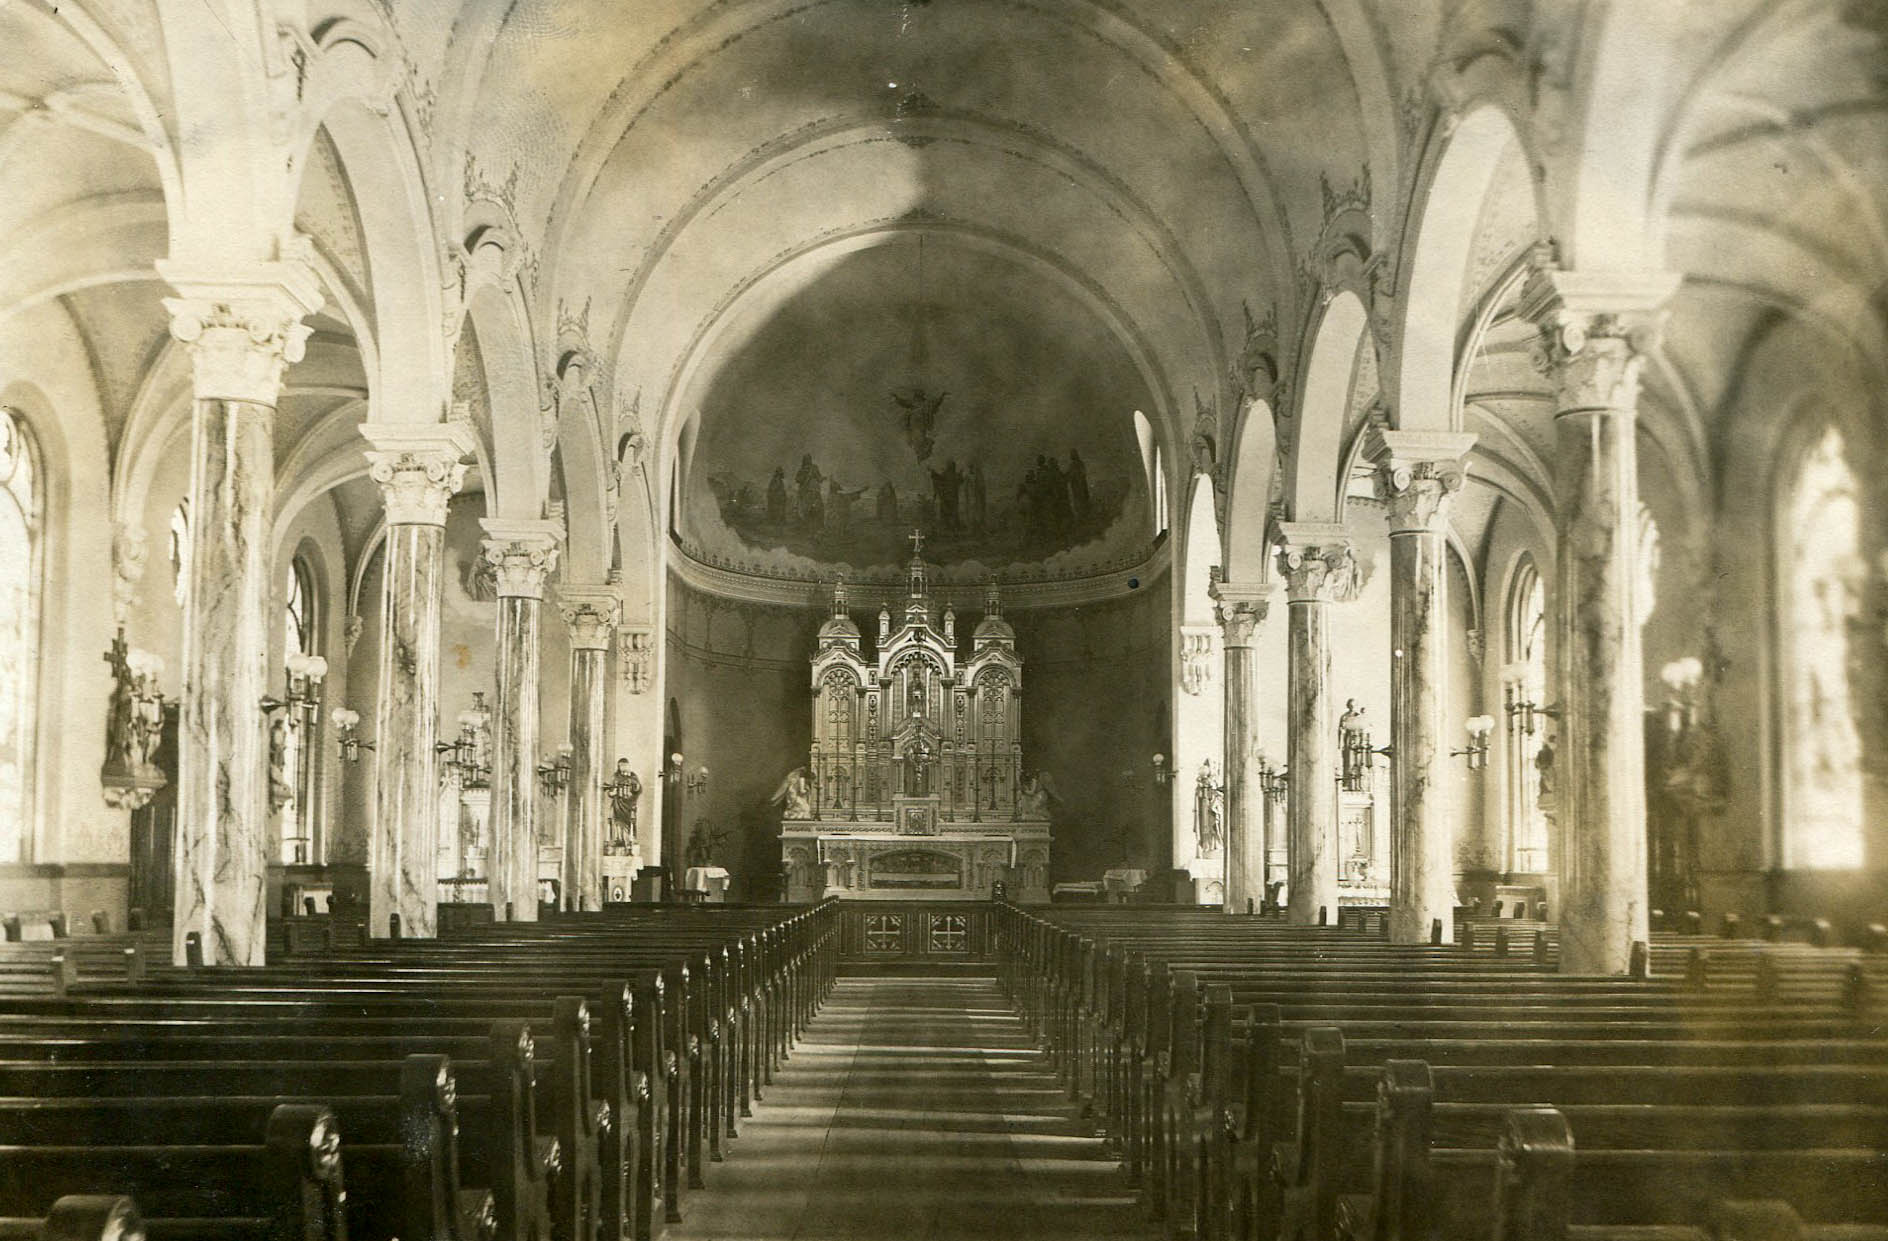 Interior of St. Patrick's 1920